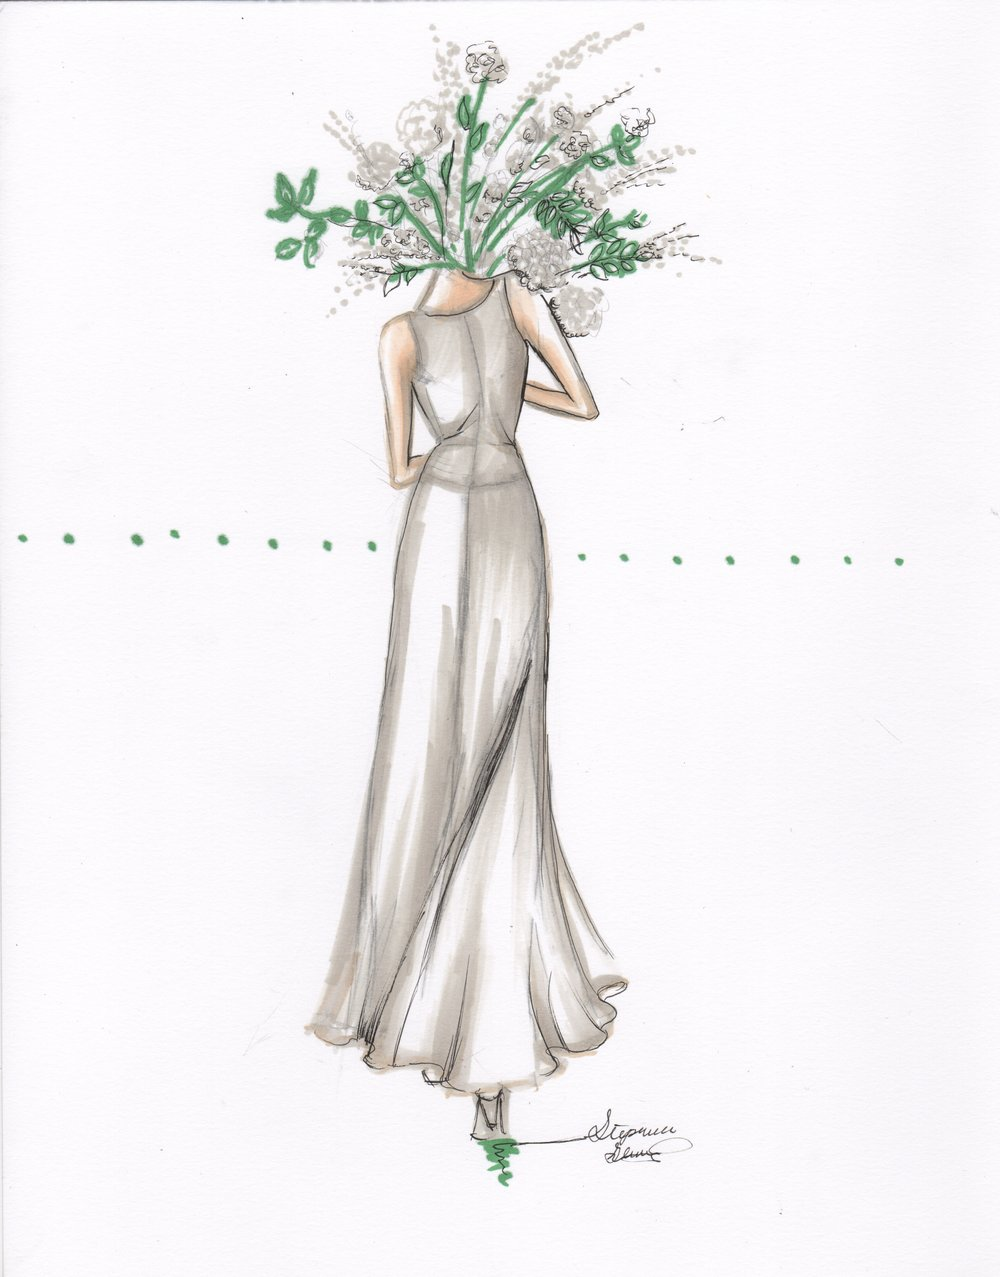 Series of fashion sketches inspired by flowers. This could be a great way to do a more whimsical style for your portrait!